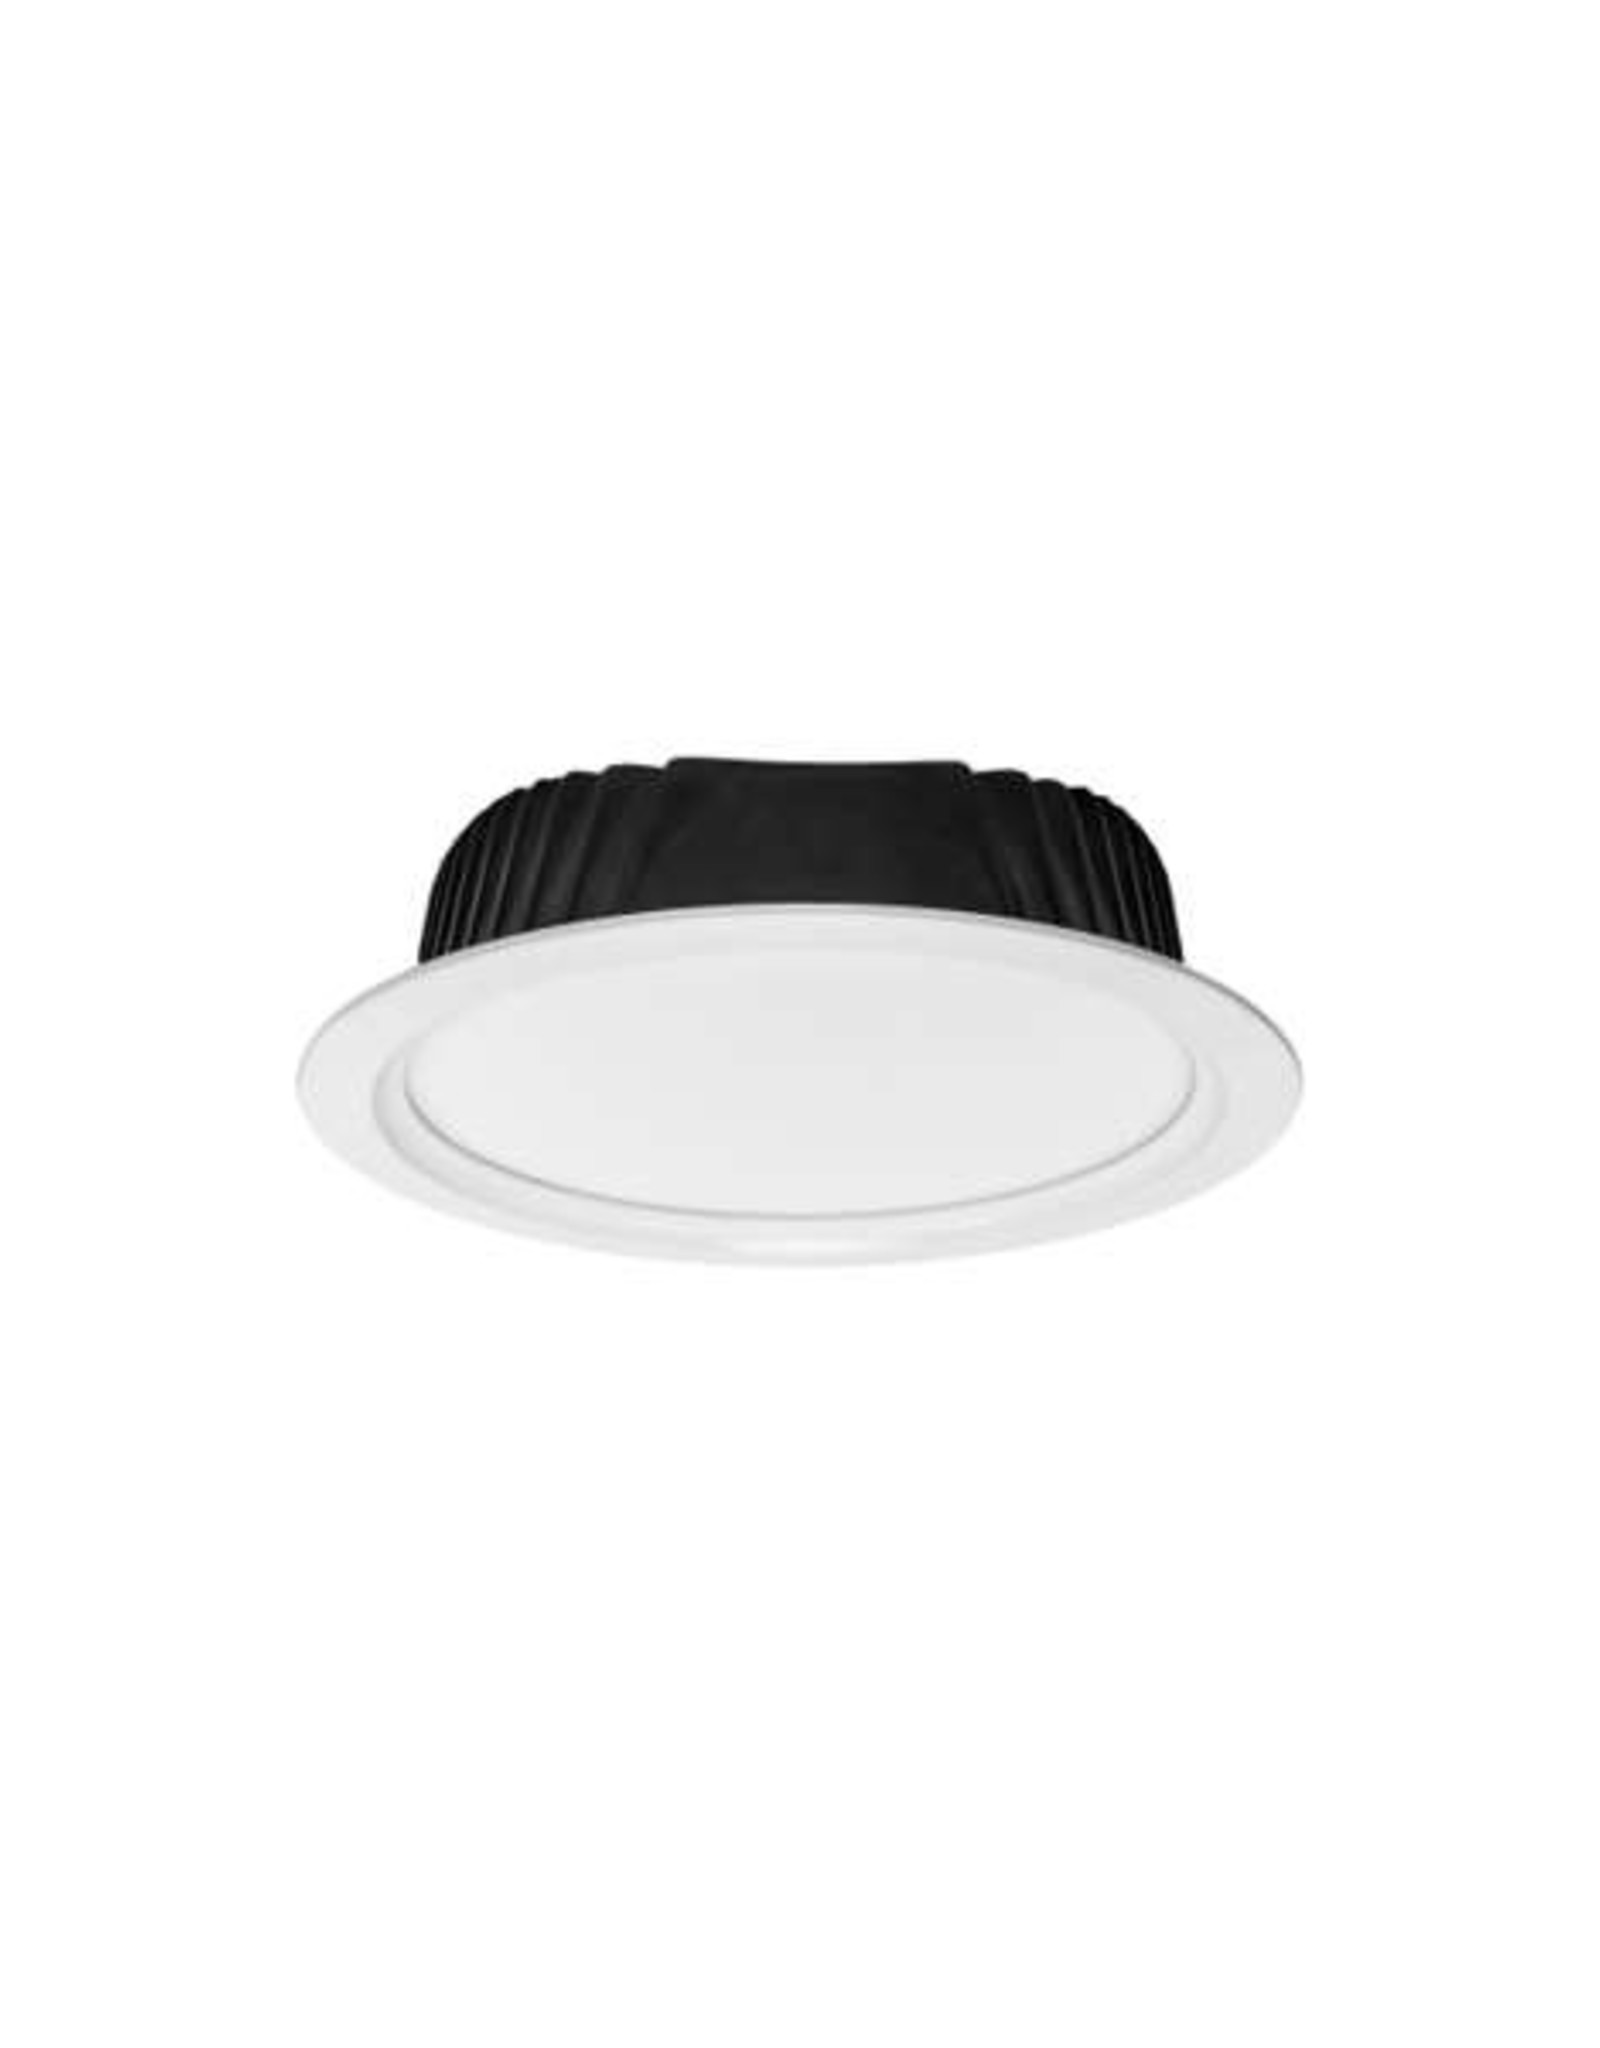 LUXON LED DOWNLIGHT:LED RC 2.0 III -3650 lm